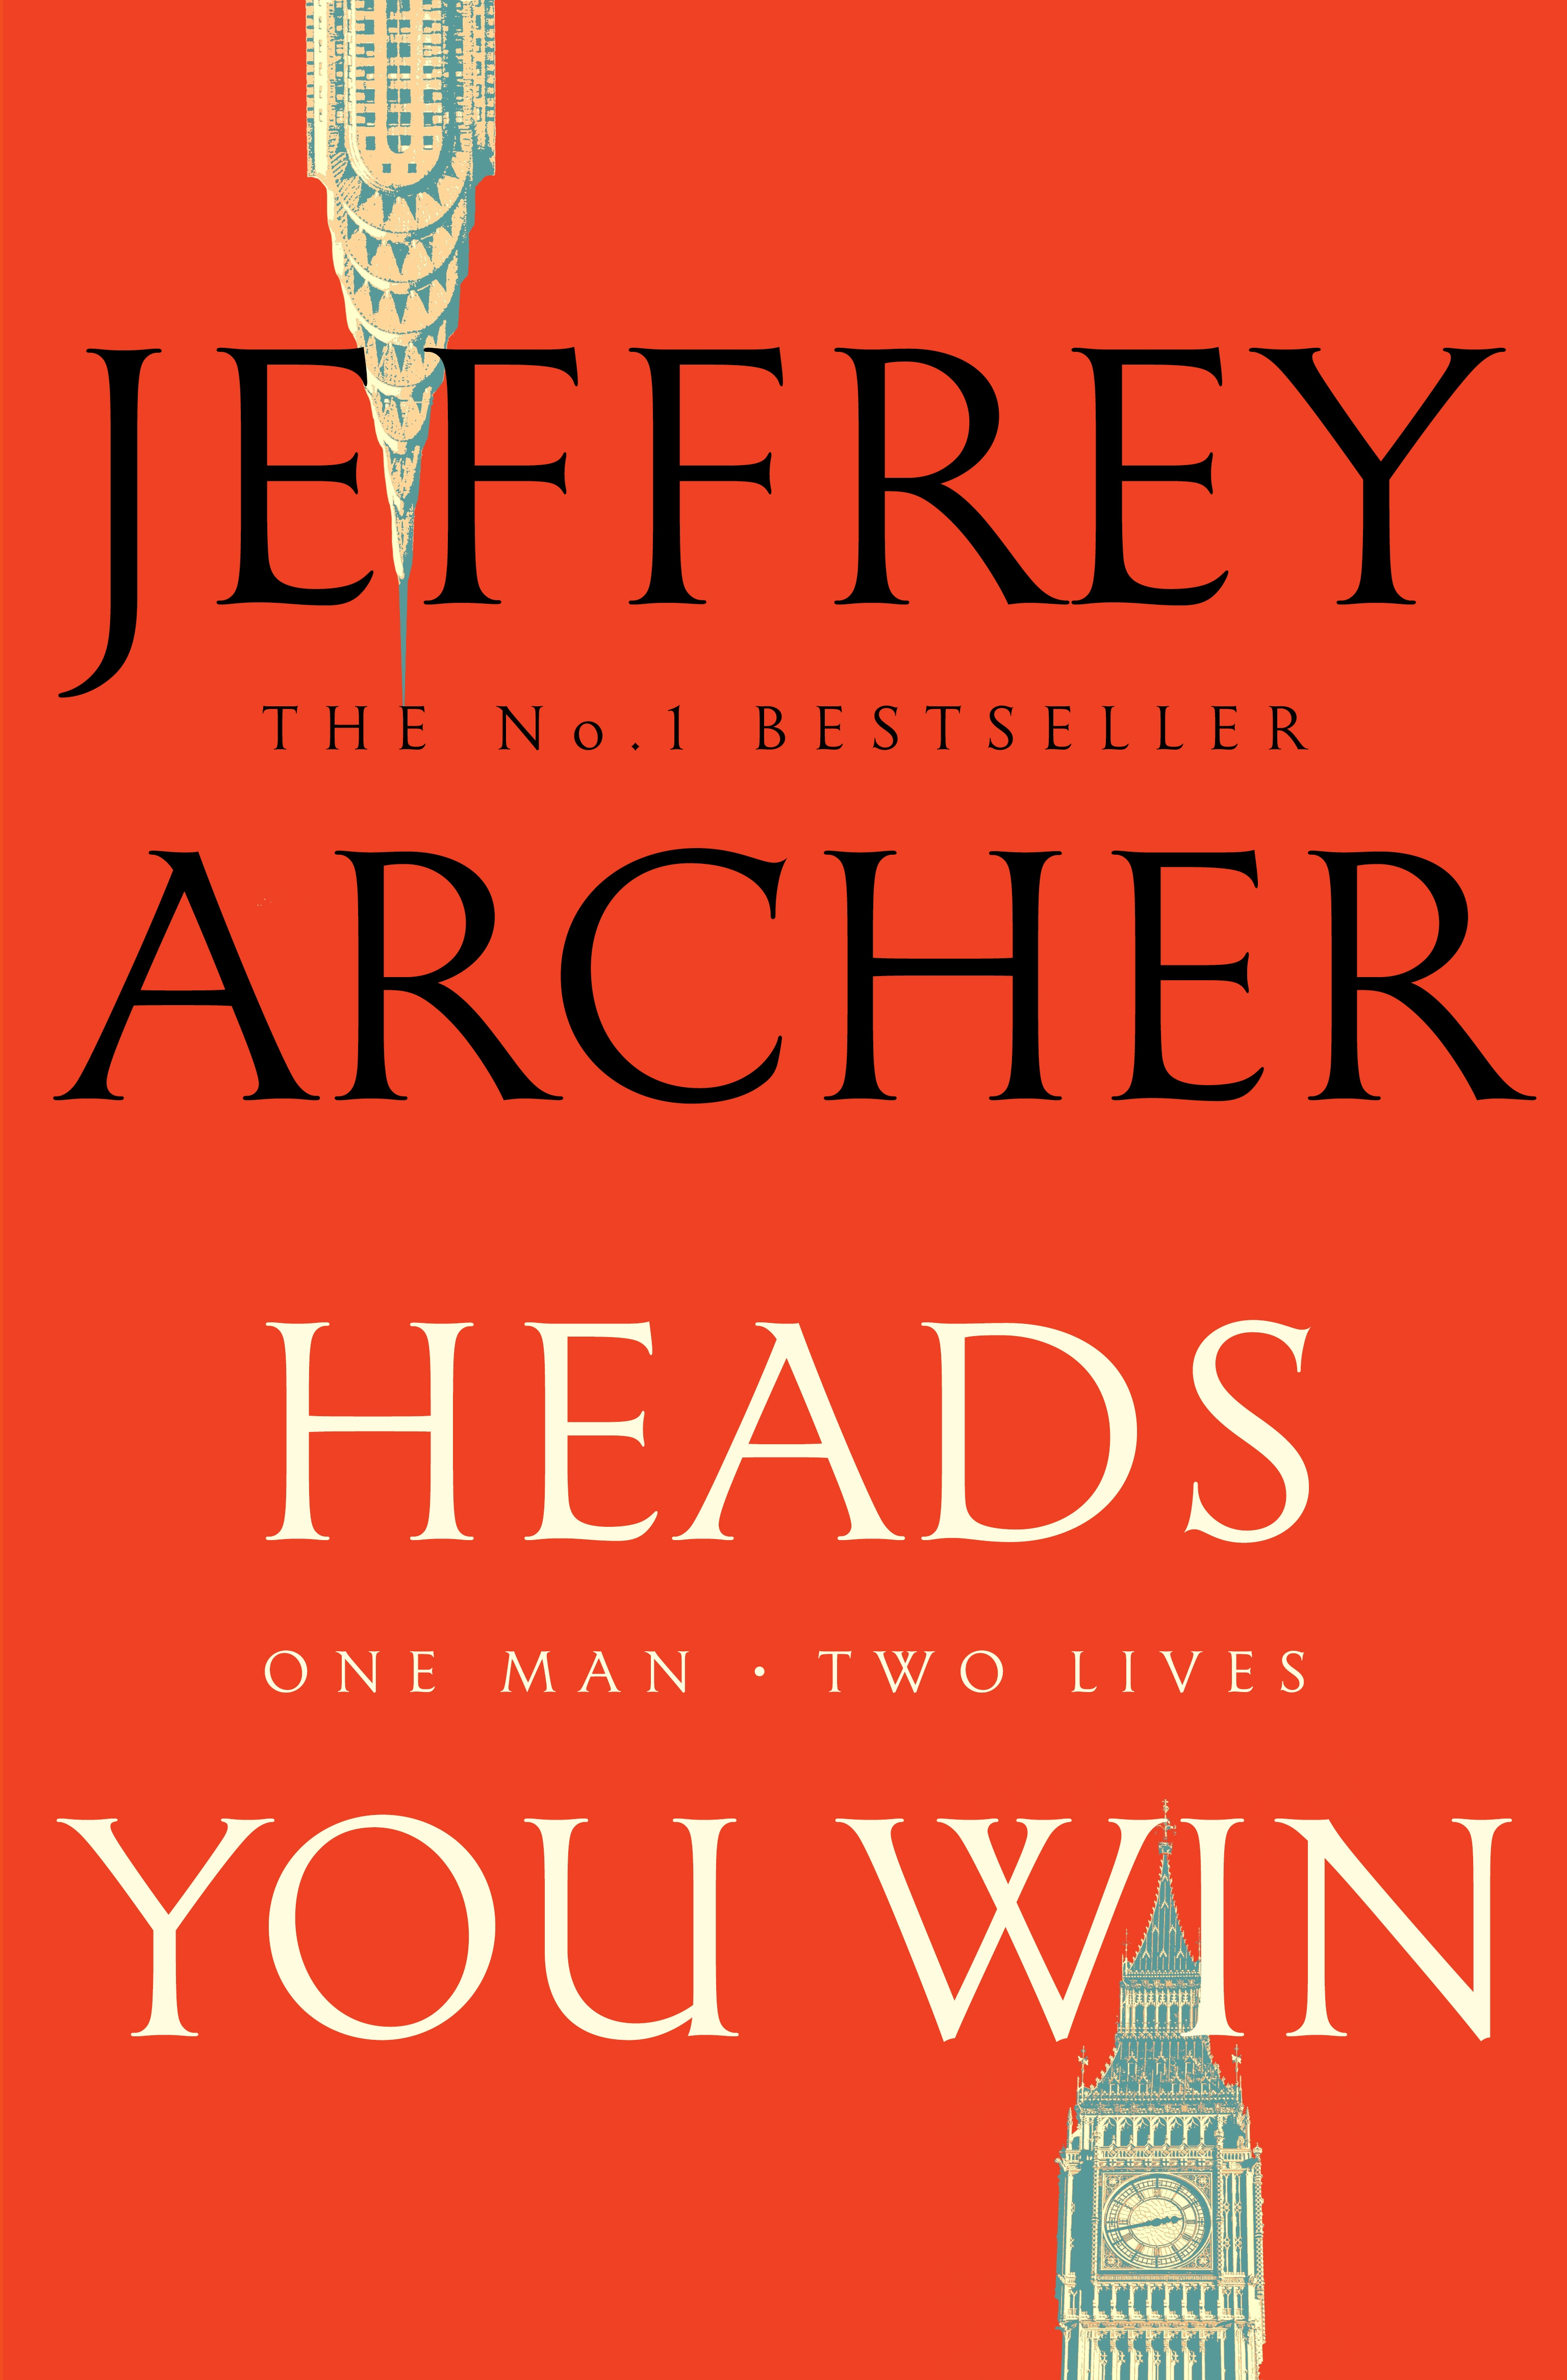 Jeffrey Archer Libros Heads You Win By Jeffrey Archer